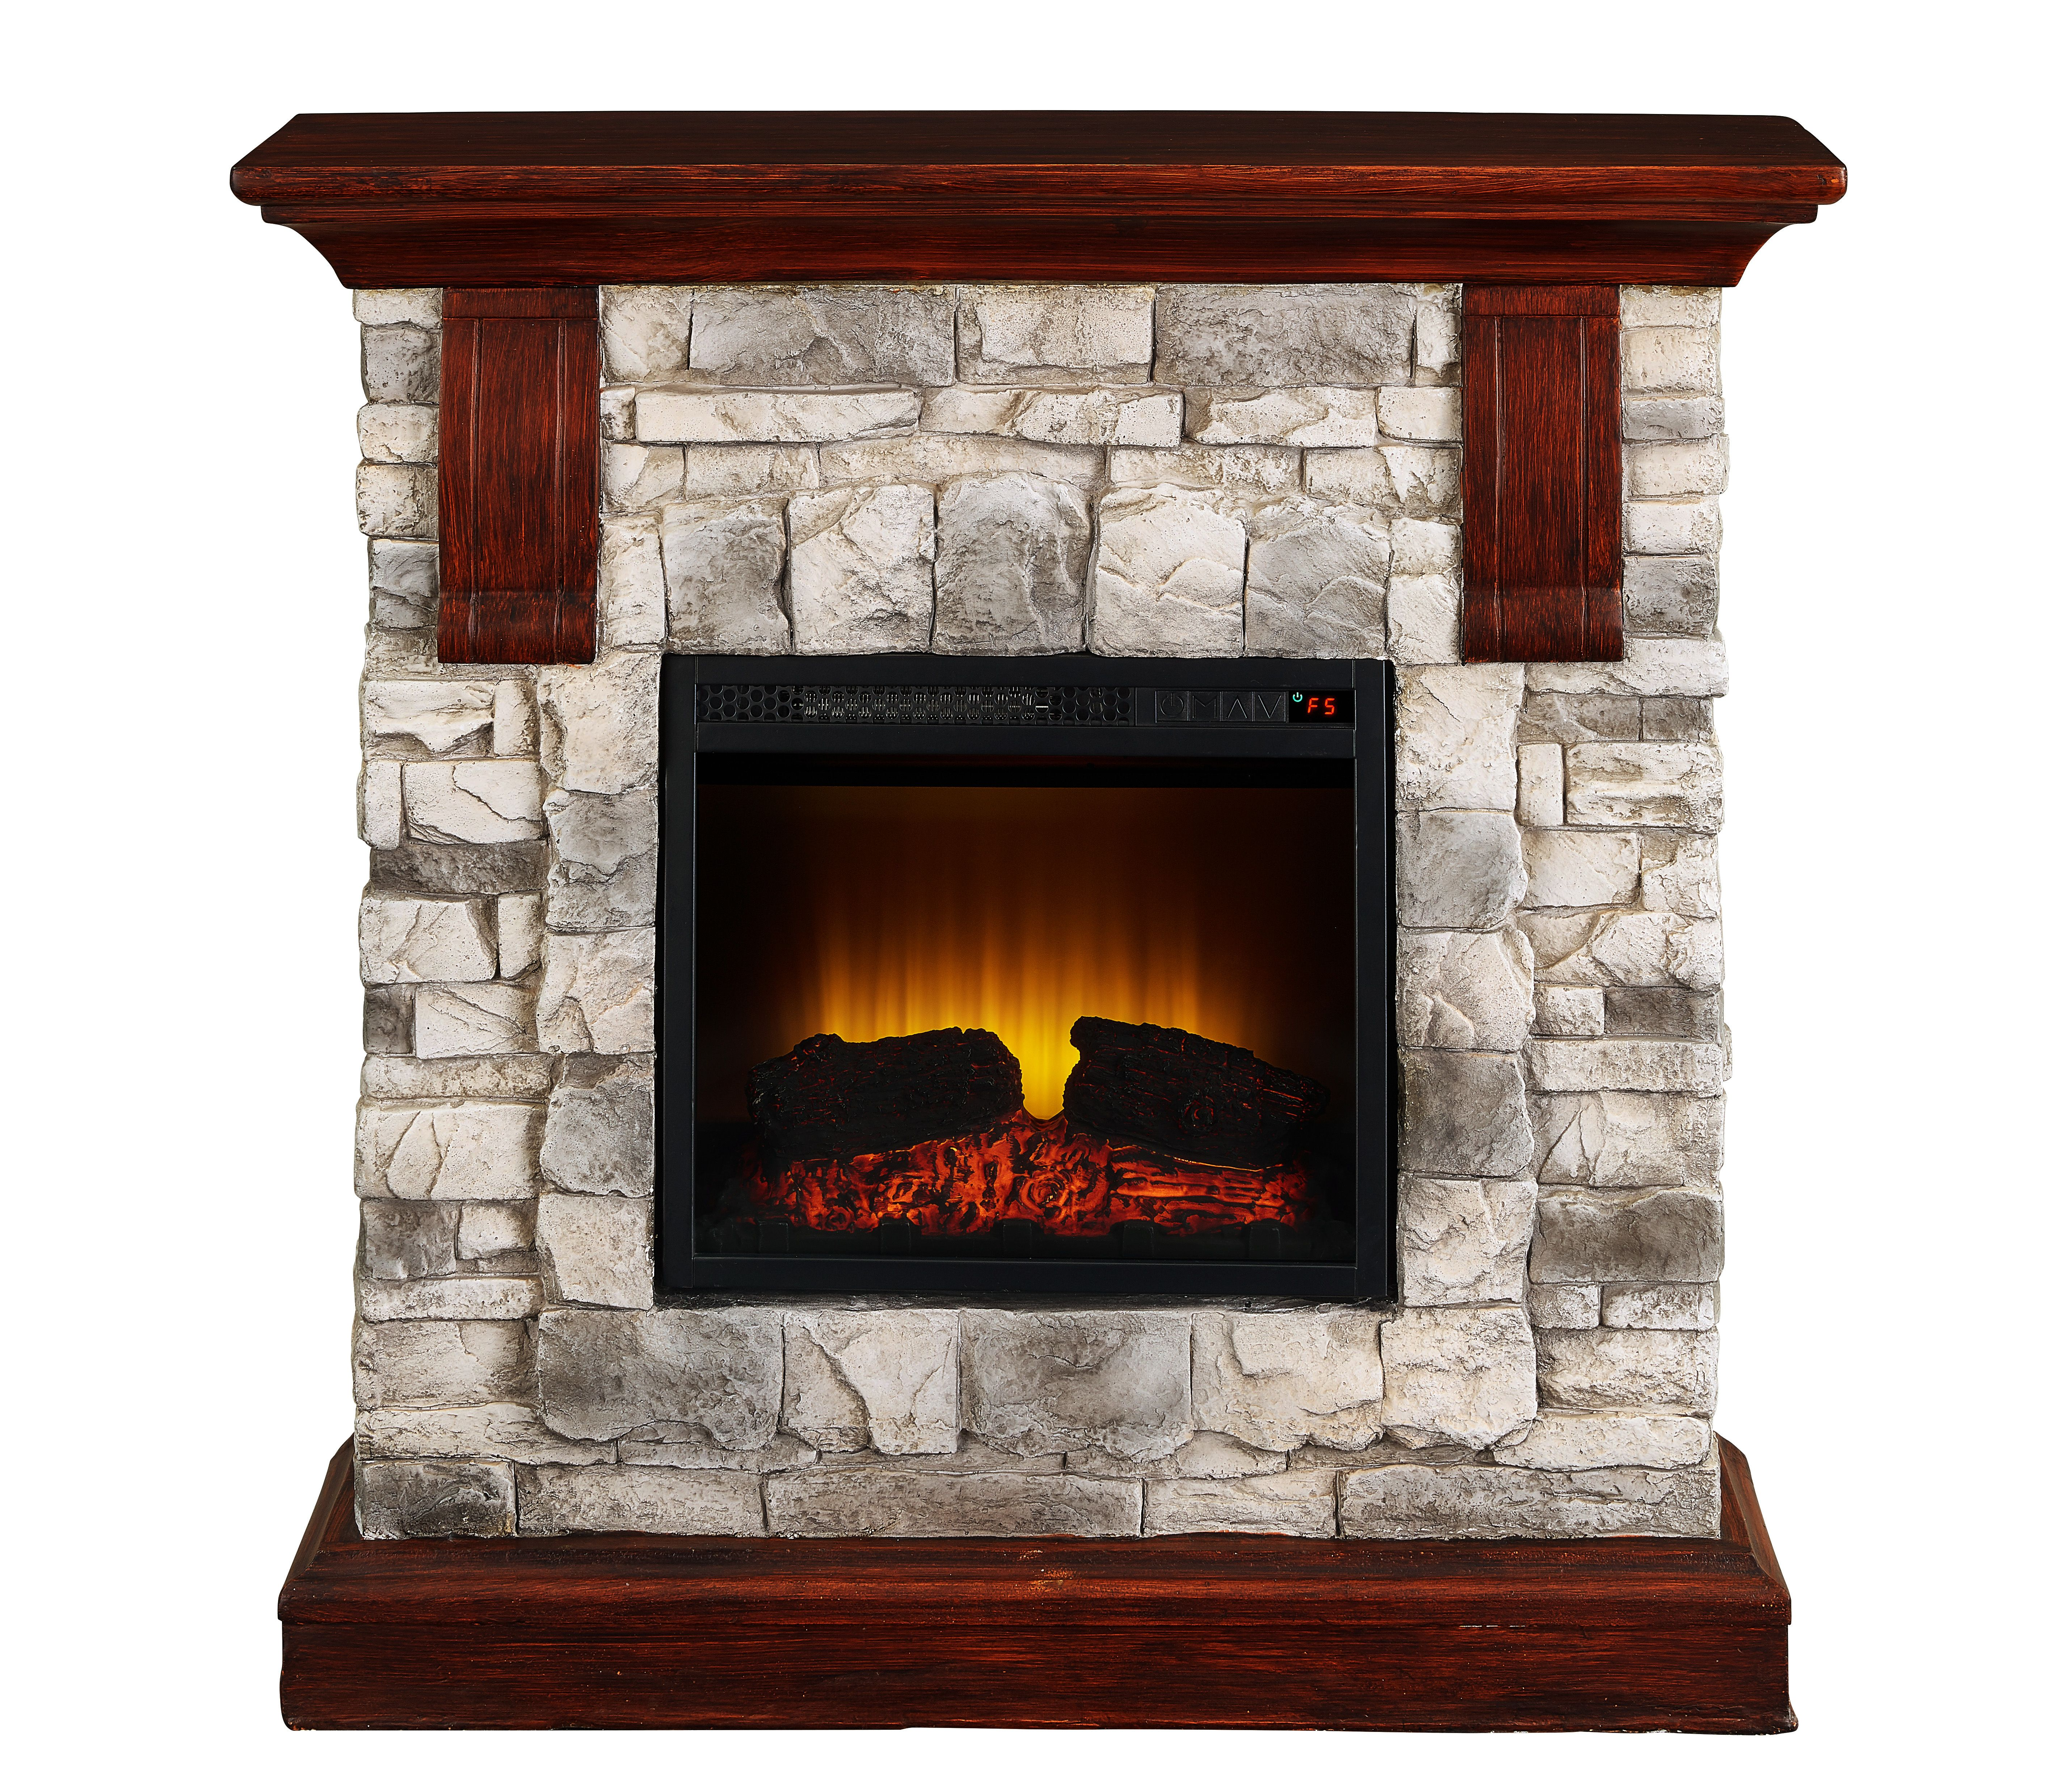 Electric Fireplaces For Sale At Walmart Bold Flame 40 Inch Faux Stone Electric Fireplace Heater In Tan